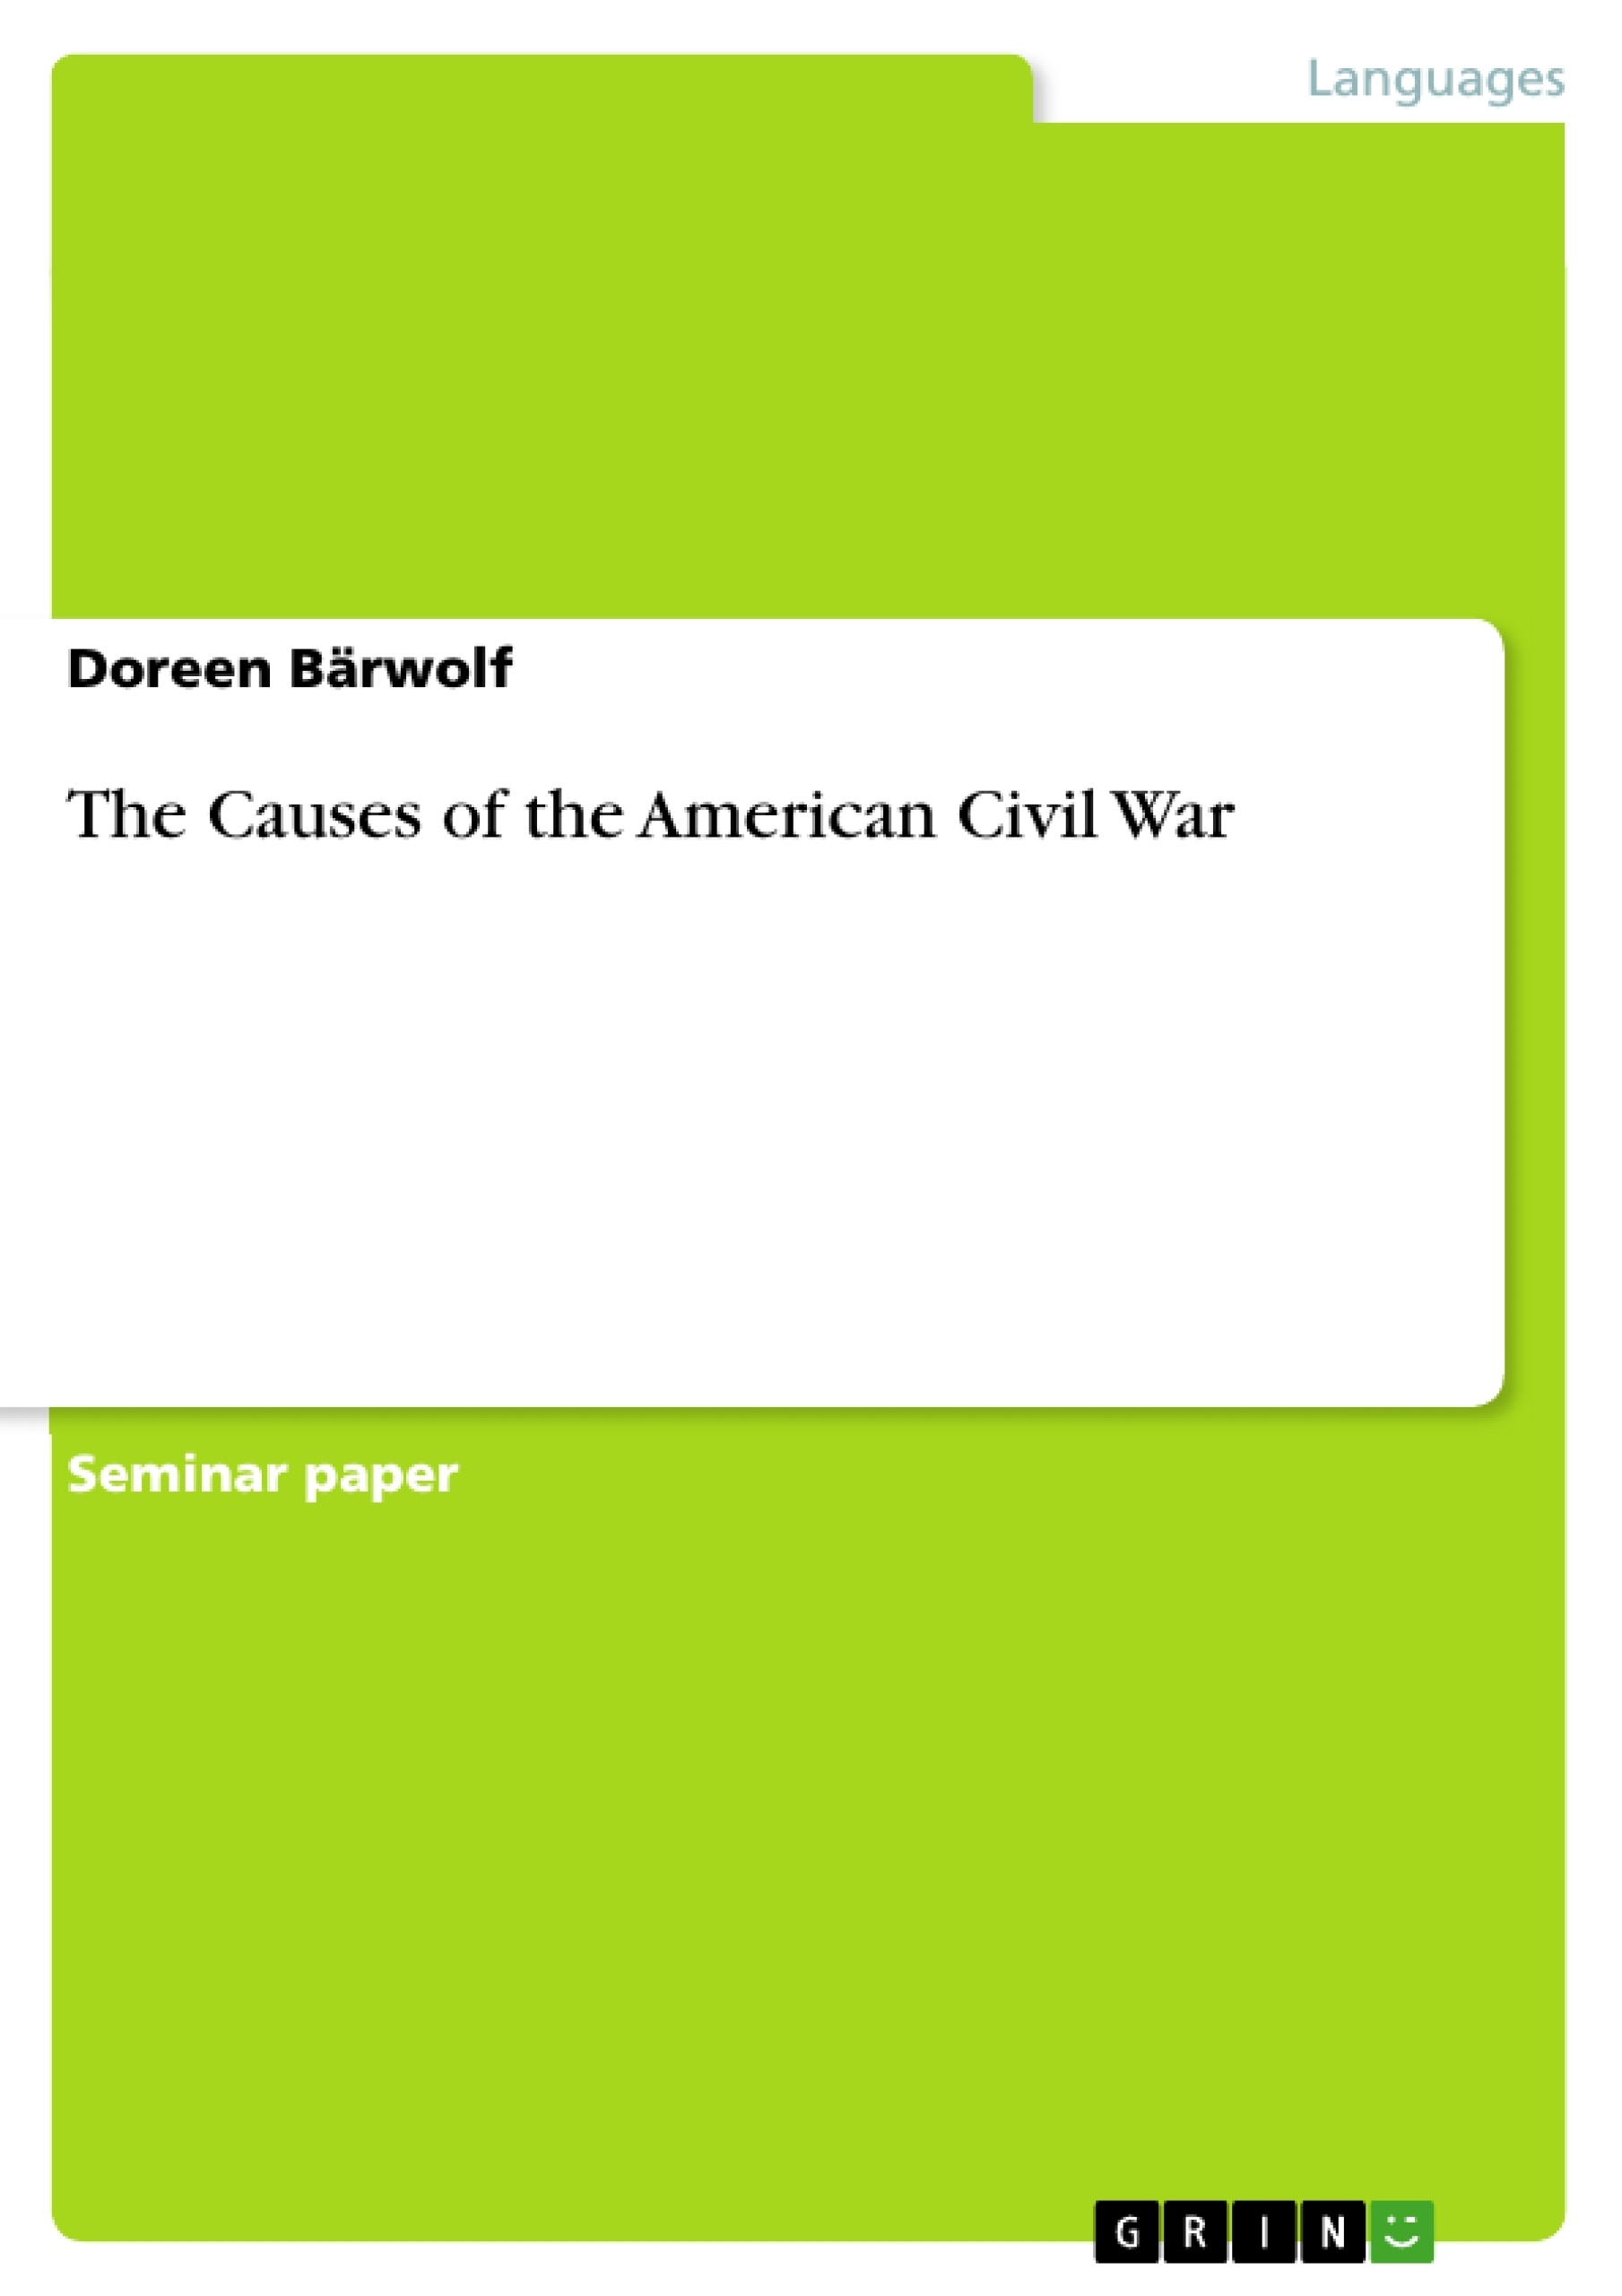 Title: The Causes of the American Civil War